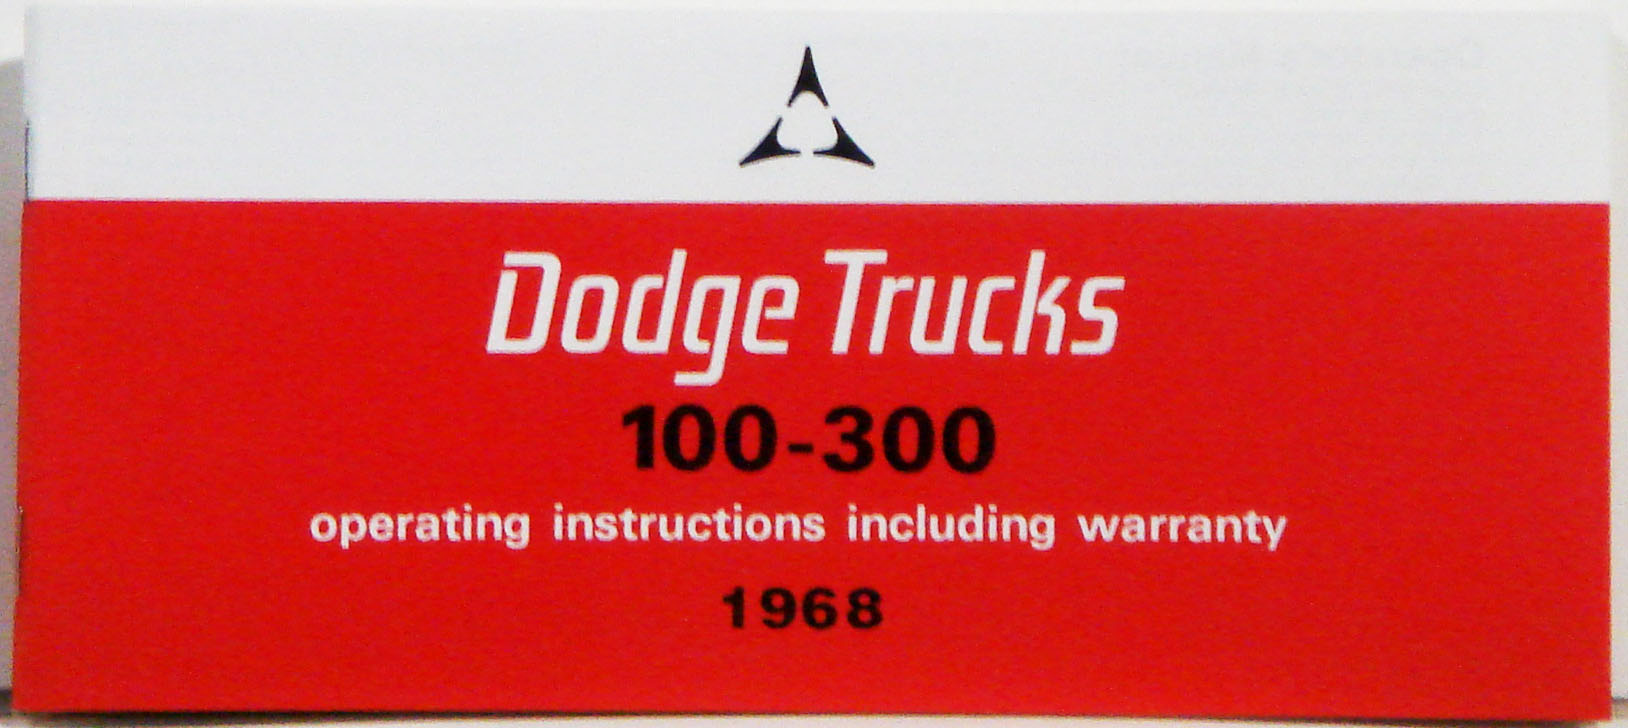 1968 Dodge Truck Owners Manual